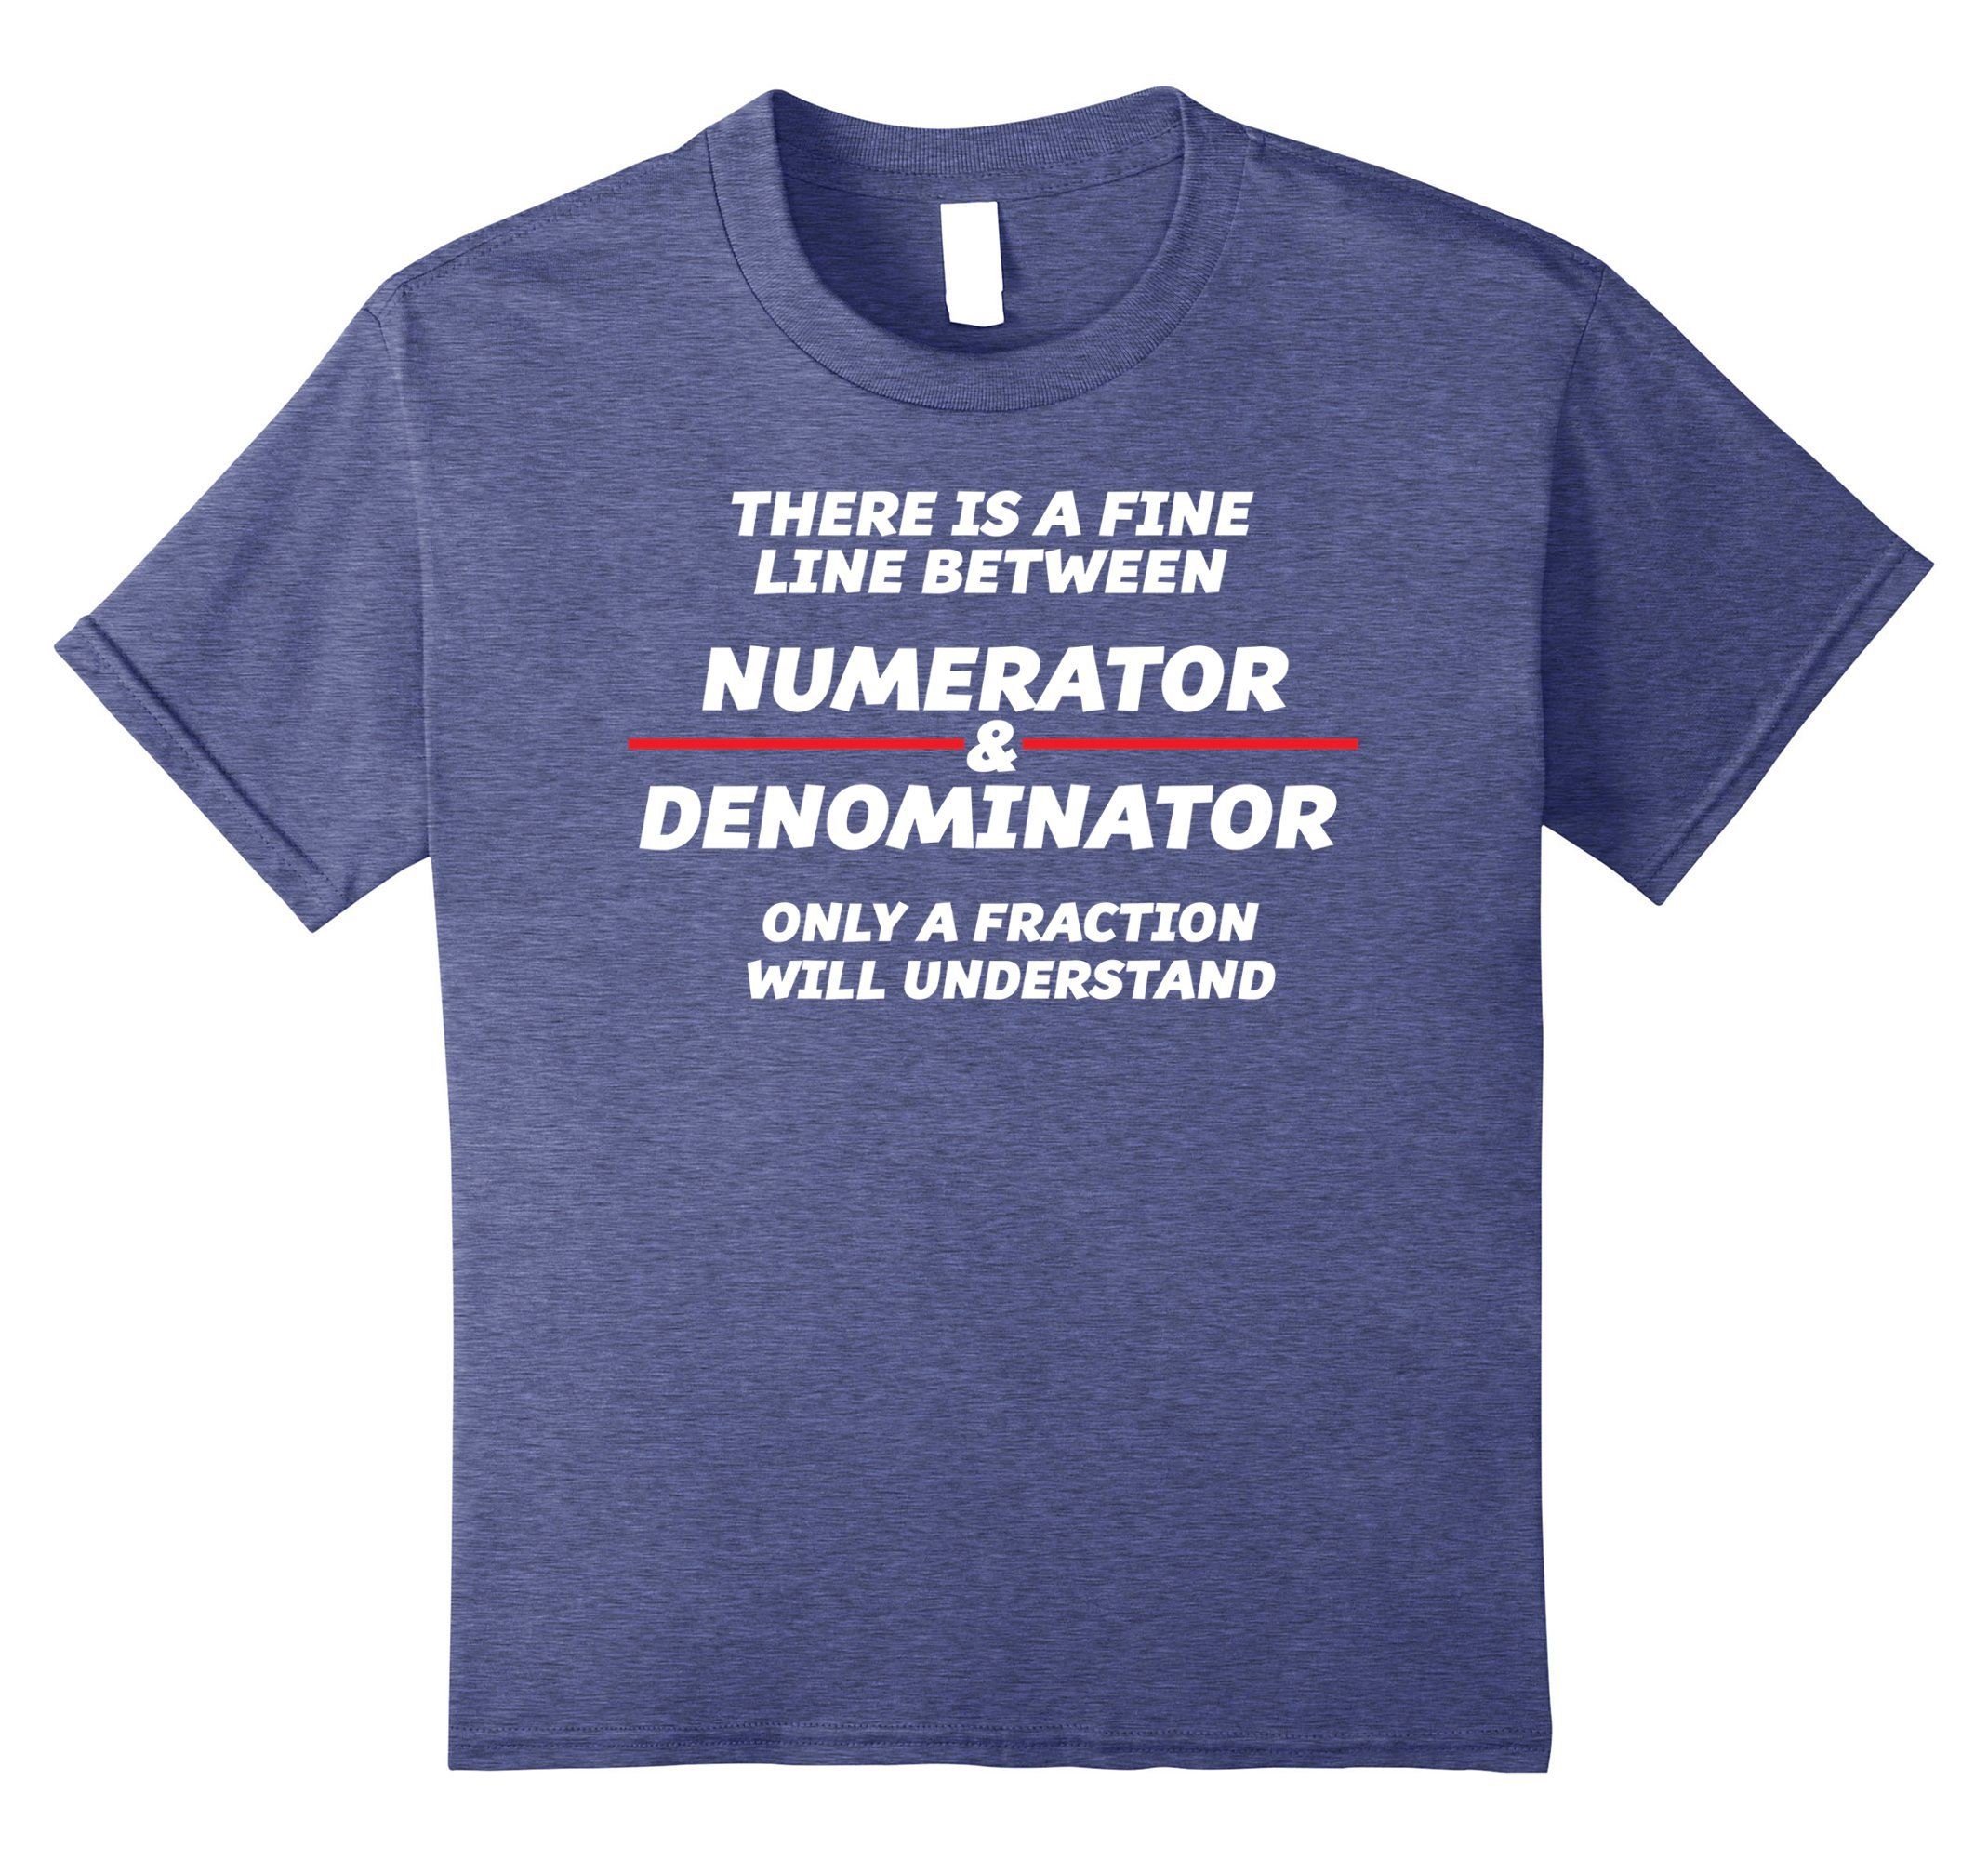 Kids There is a fine line between NUMERATOR & DENOMINATOR T-Shirt 12 Heather Blue